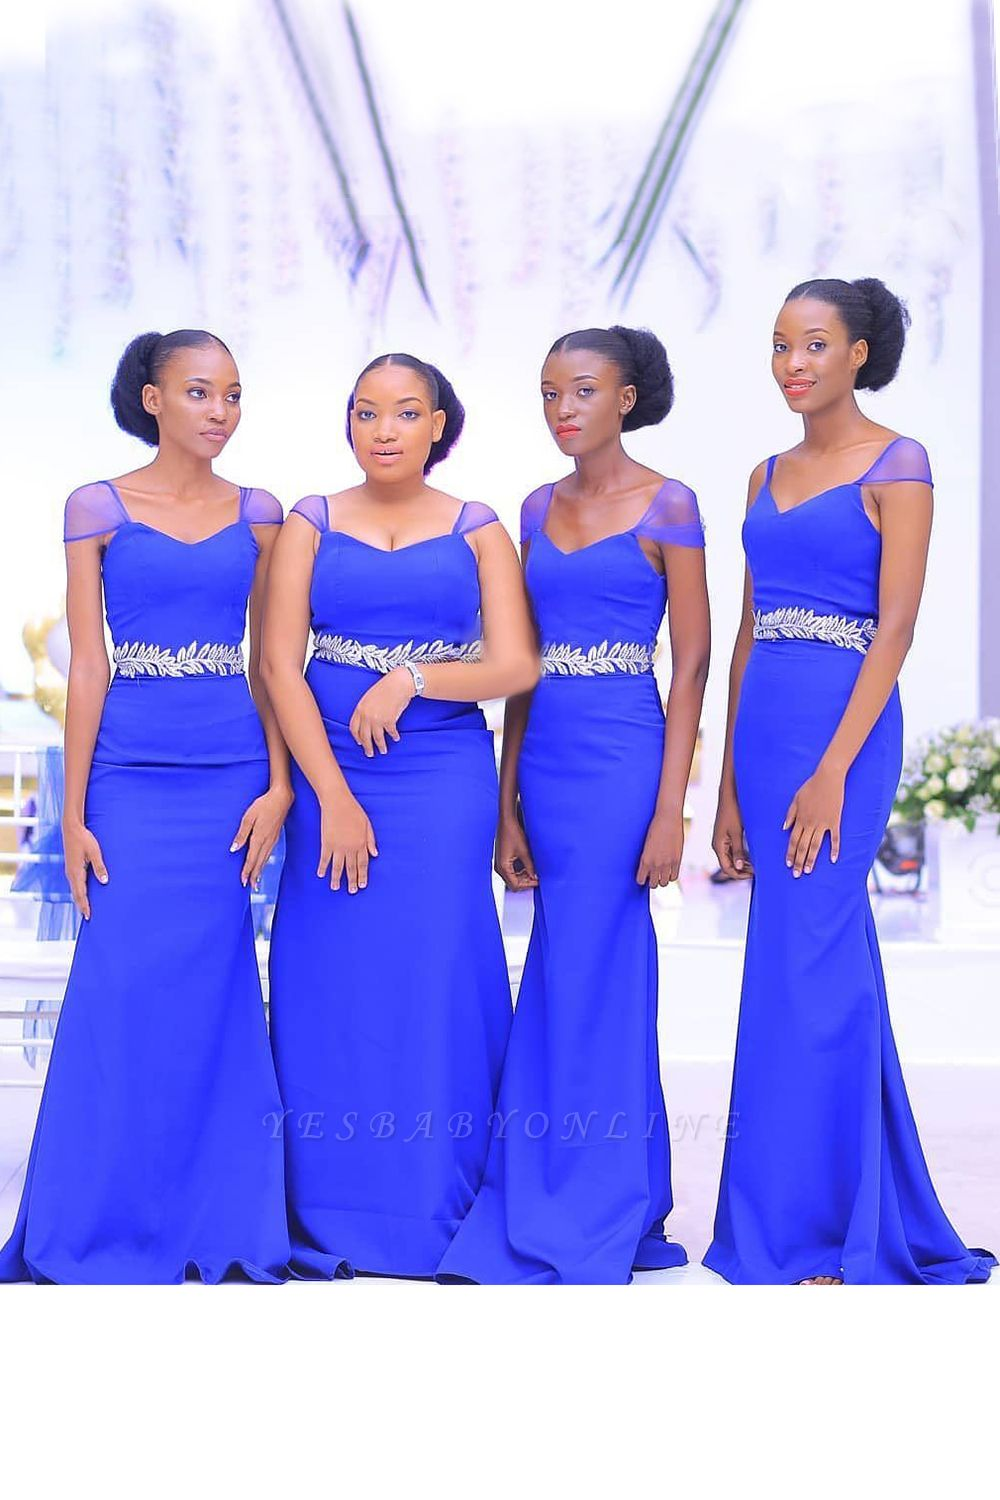 Beaded Cap Sleeves Belted Floor Length Bridesmaid Dresses | Fitted Wedding Guest Dresses